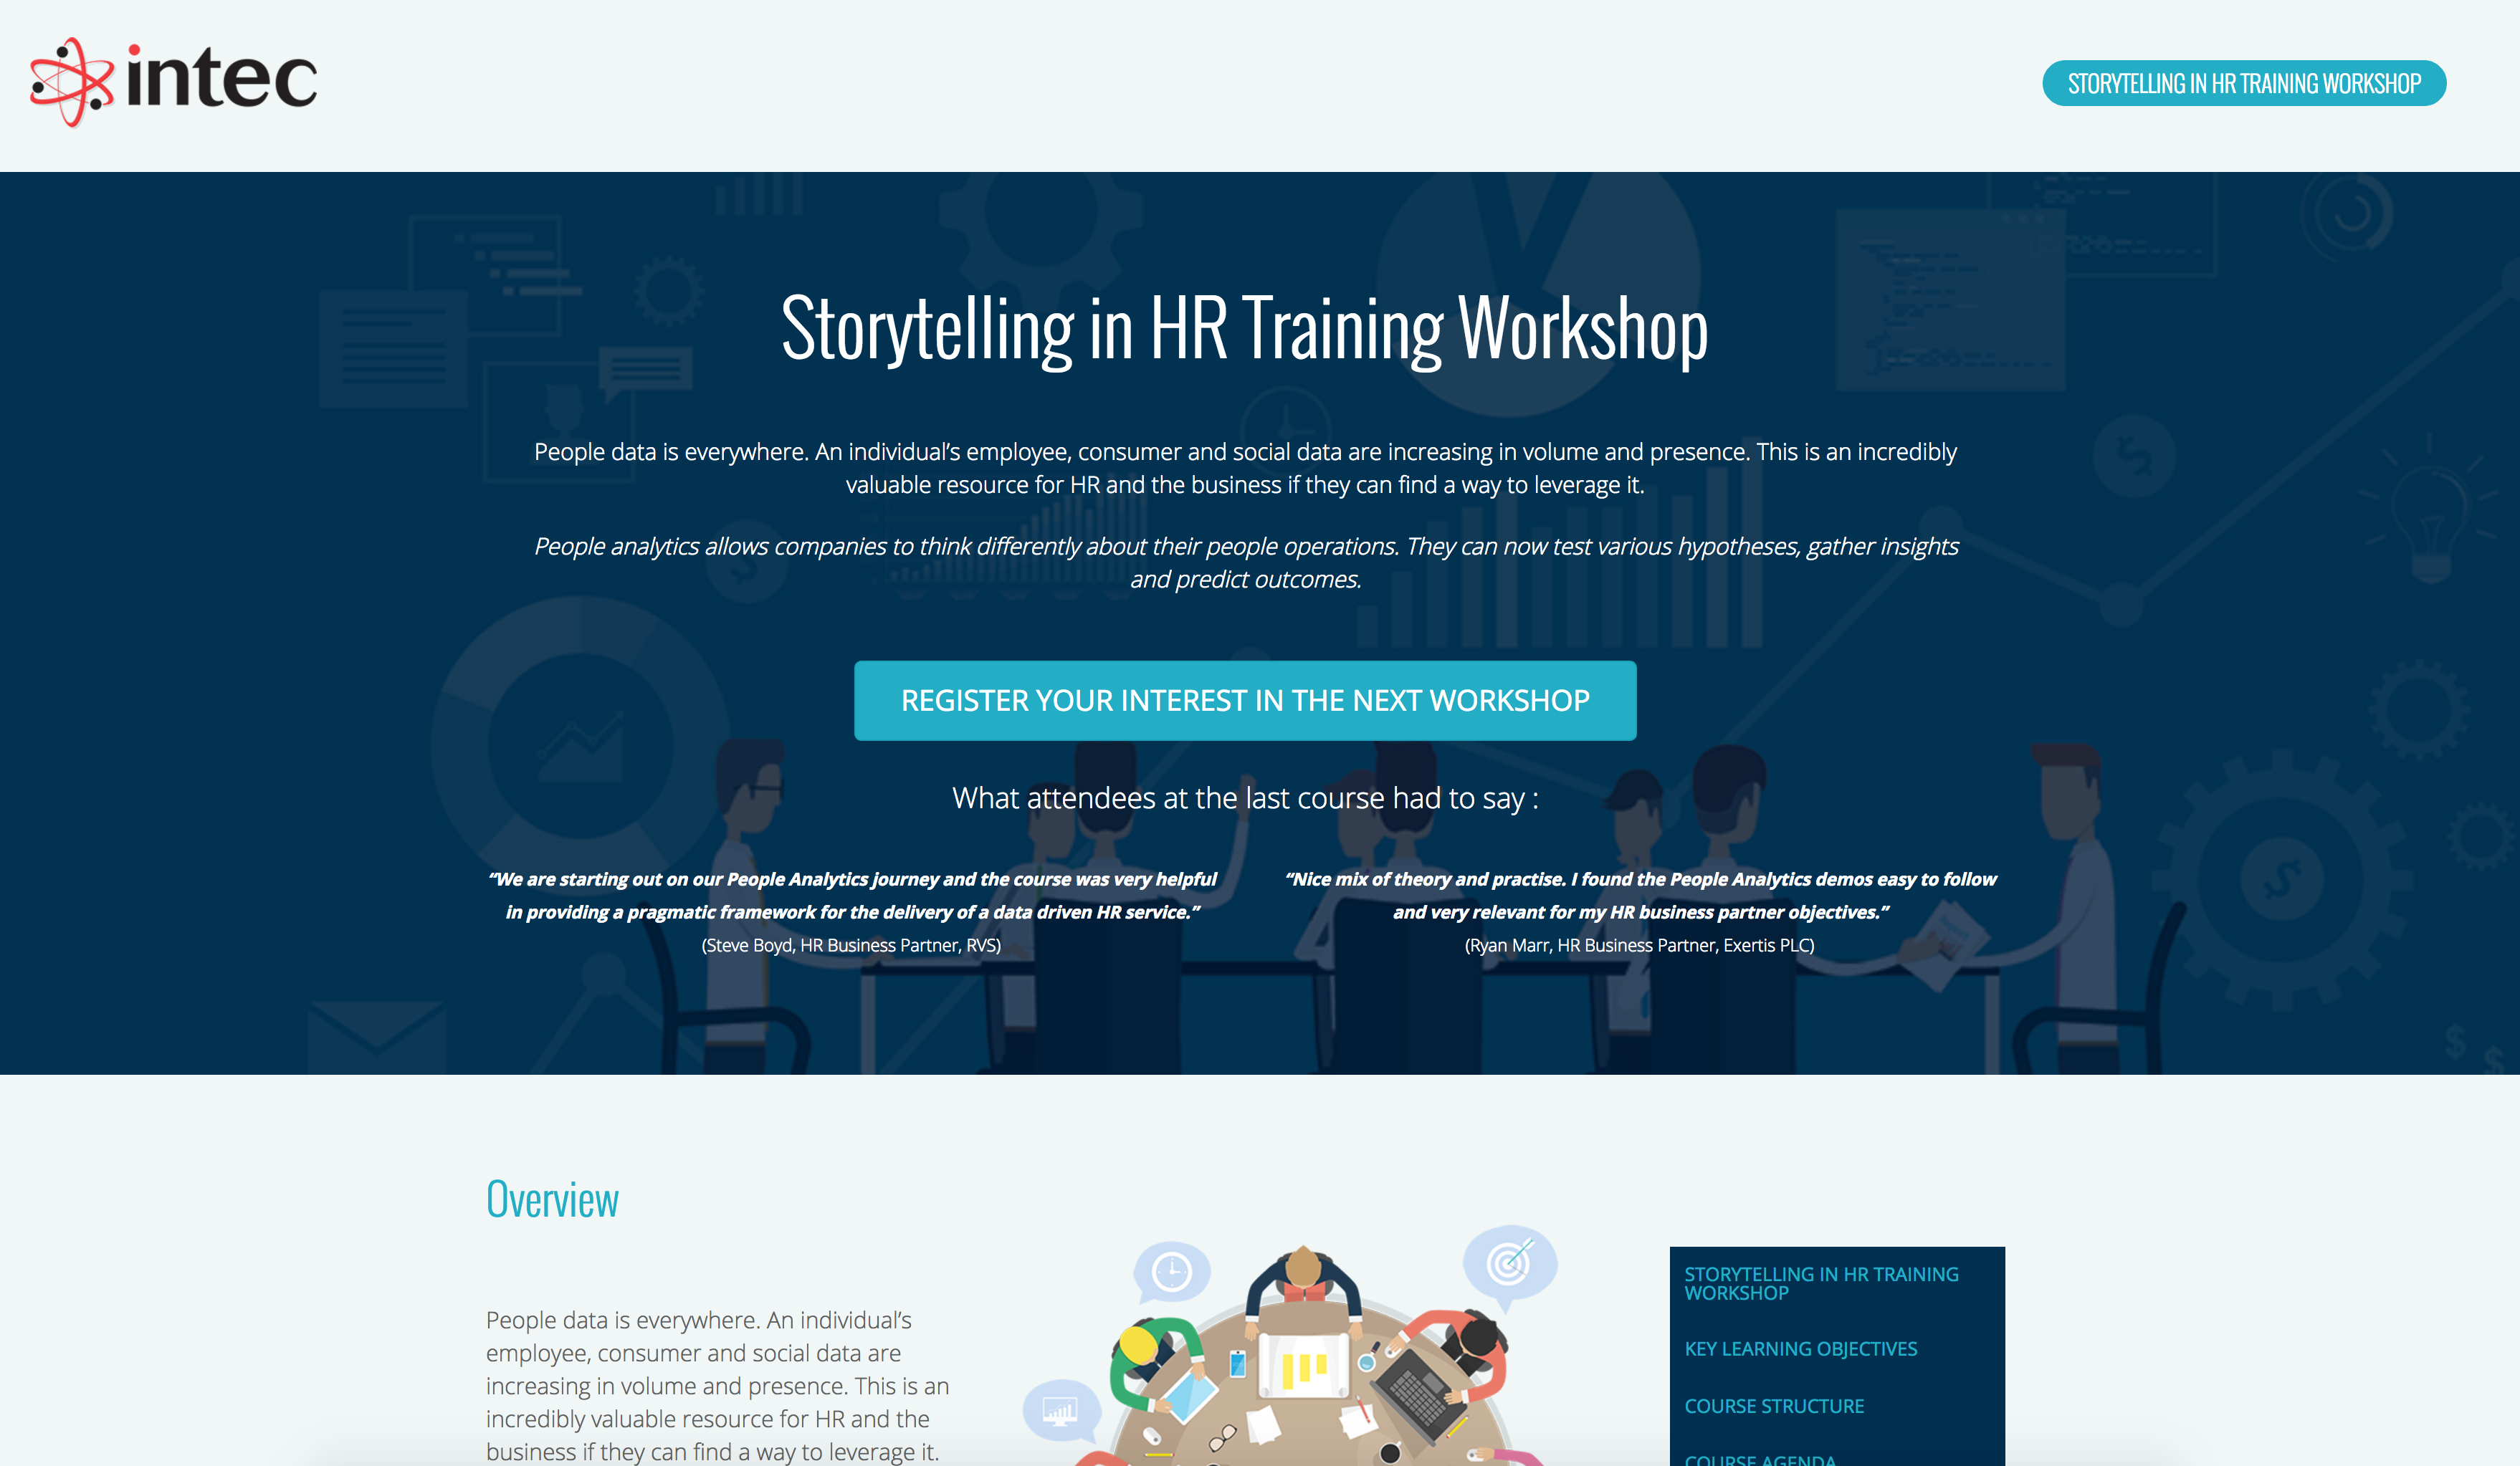 Storytelling in HR Workshop